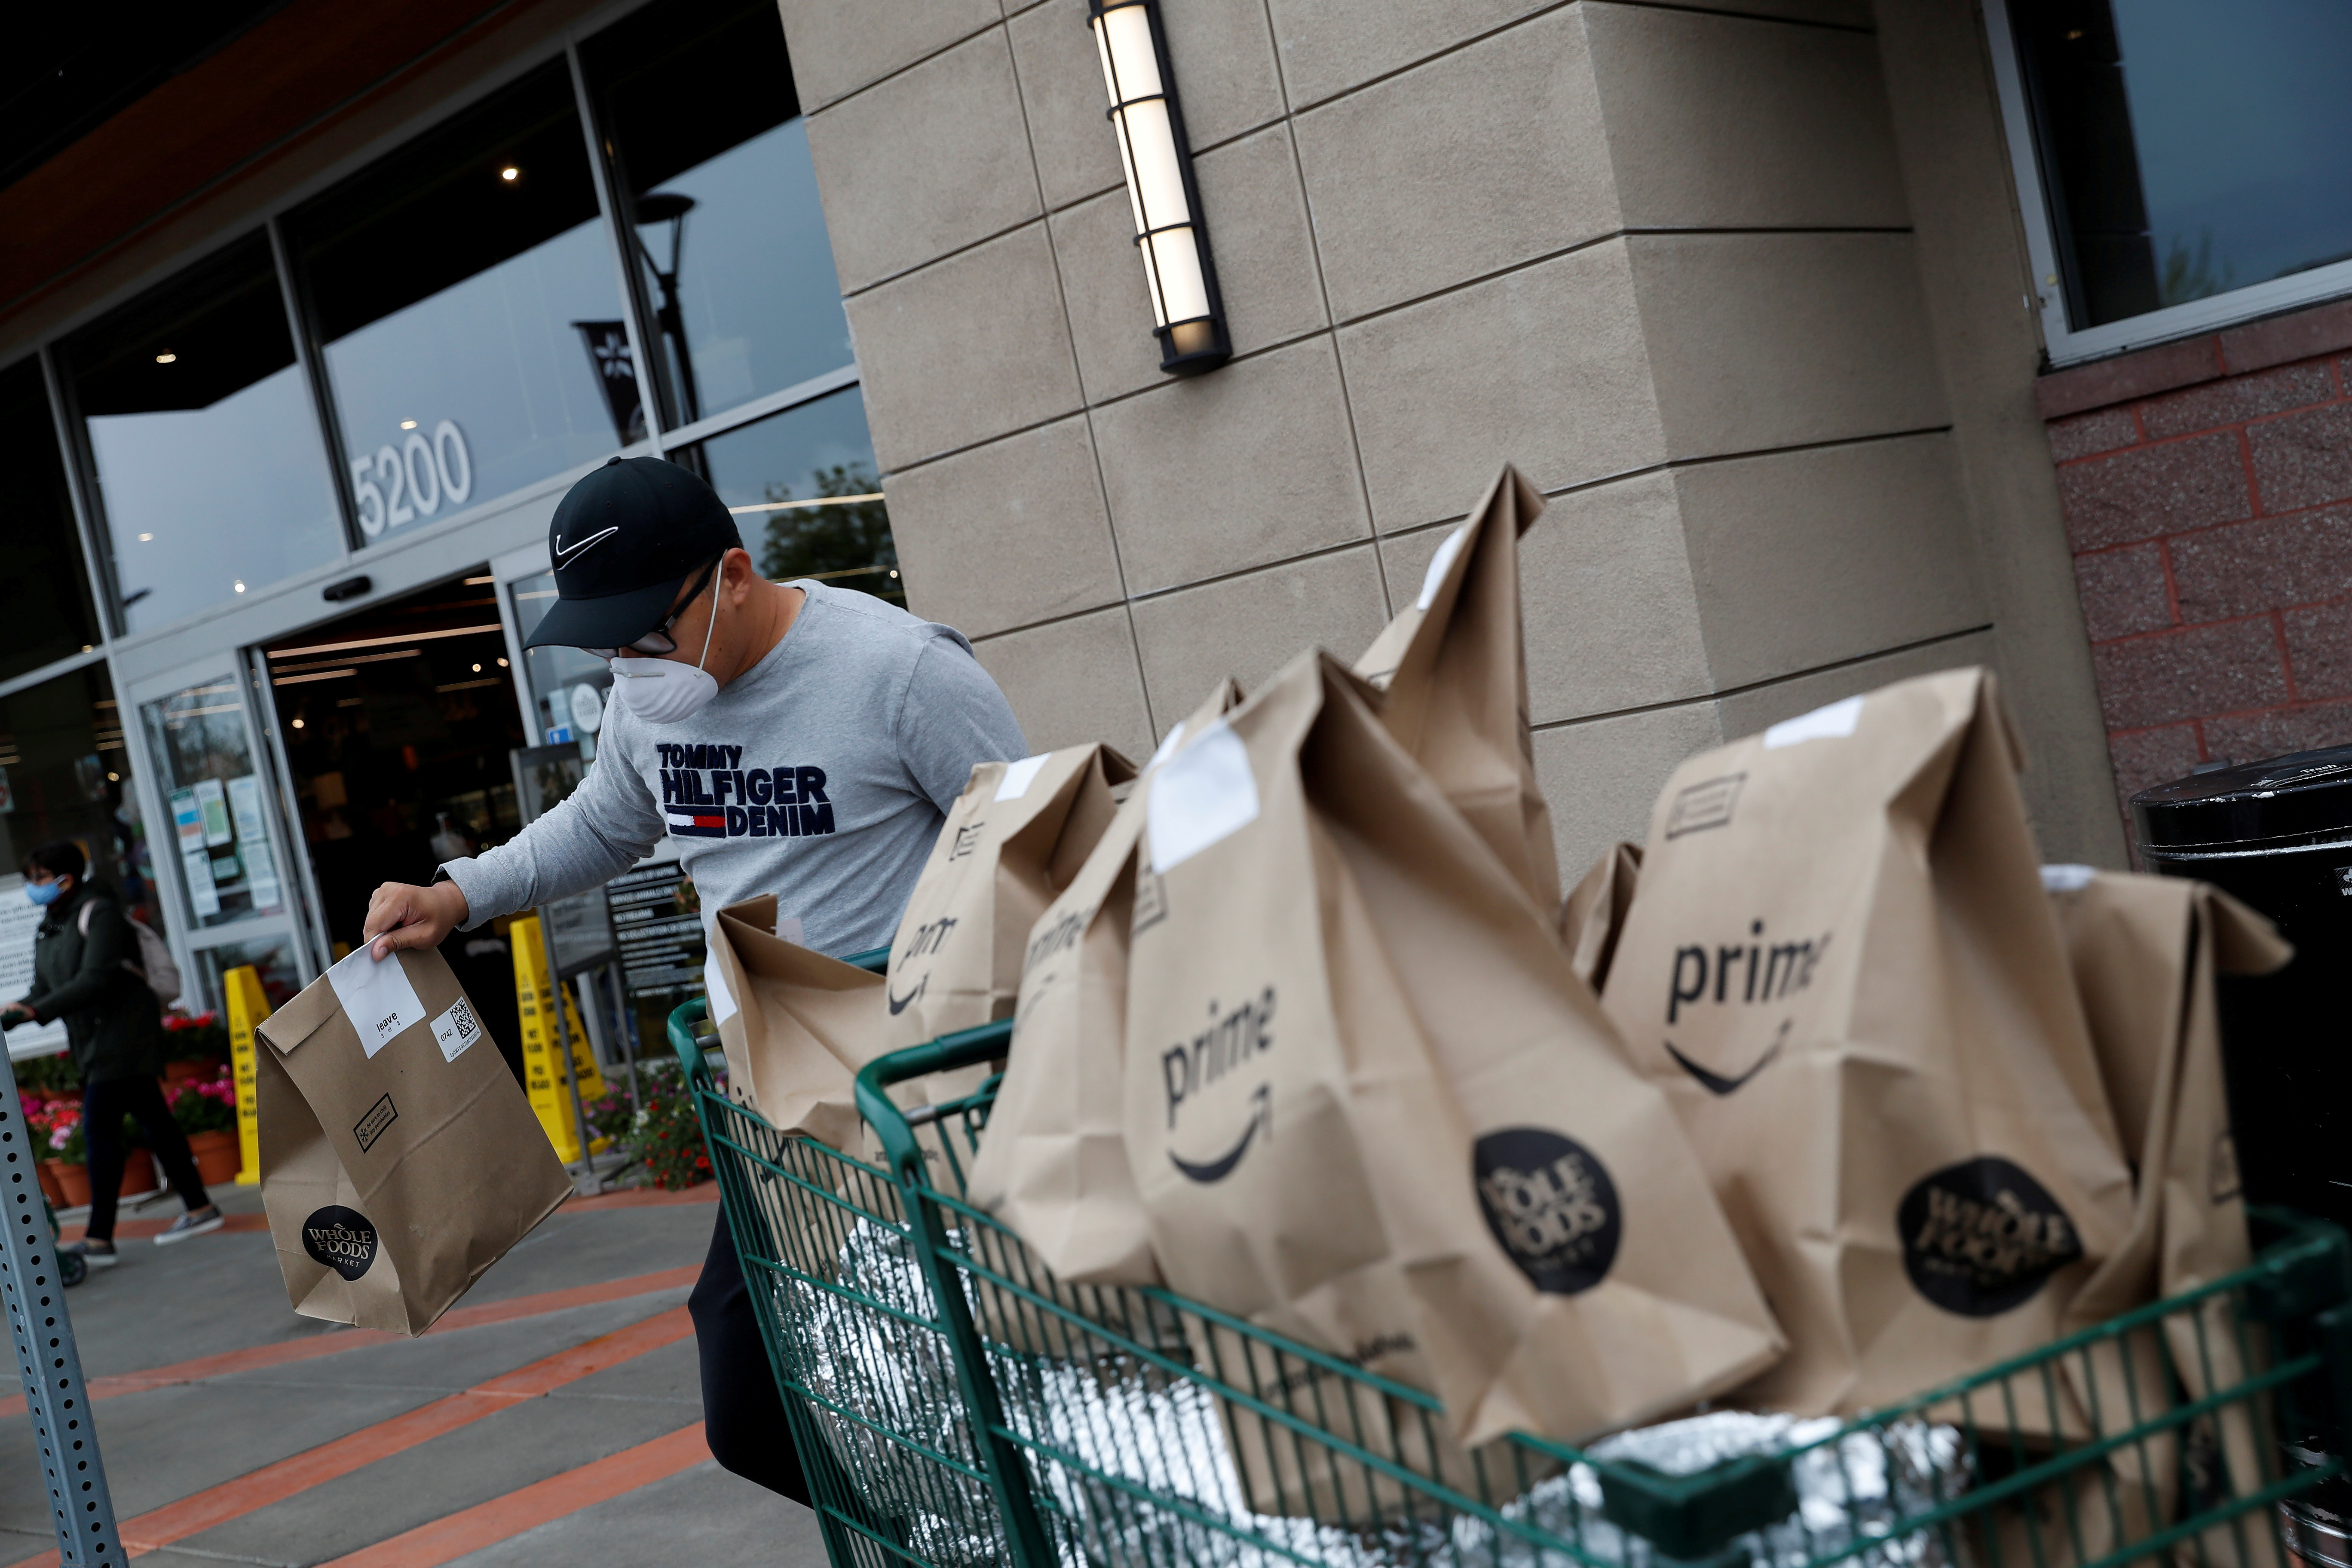 Excelso Sabulau, a 35-year-old independent contract delivery driver for Amazon Flex, wears a protective mask as he carries deliveries to his car near a Whole Foods Market, as spread of the coronavirus disease (COVID-19) continues, in Dublin, California, U.S., April 6, 2020. REUTERS/Shannon Stapleton/File Photo